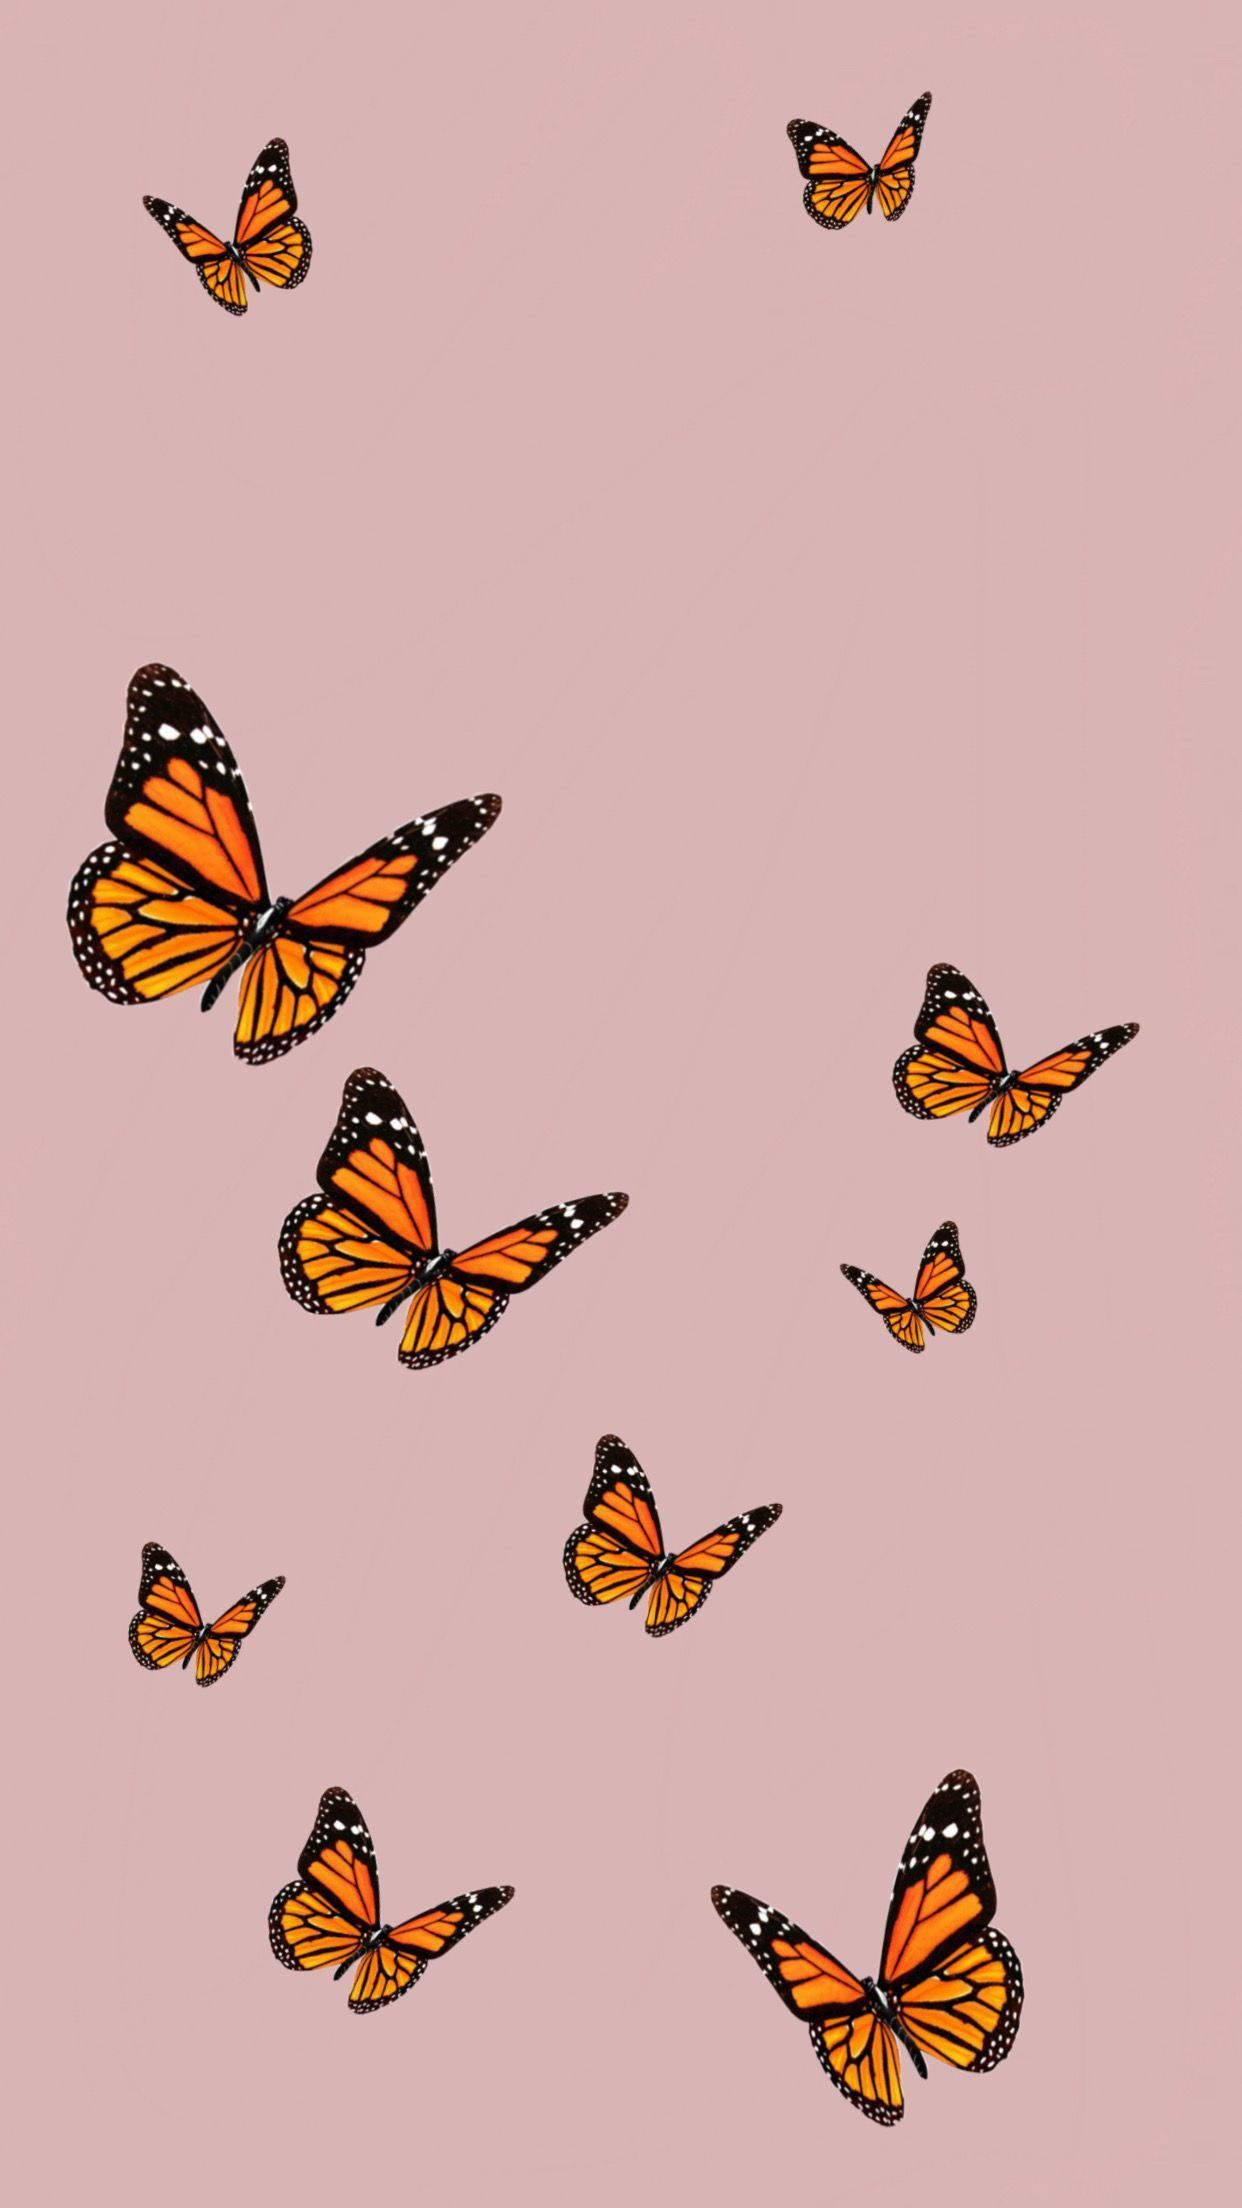 Aesthetic Simple Butterfly Wallpapers - Wallpaper Cave